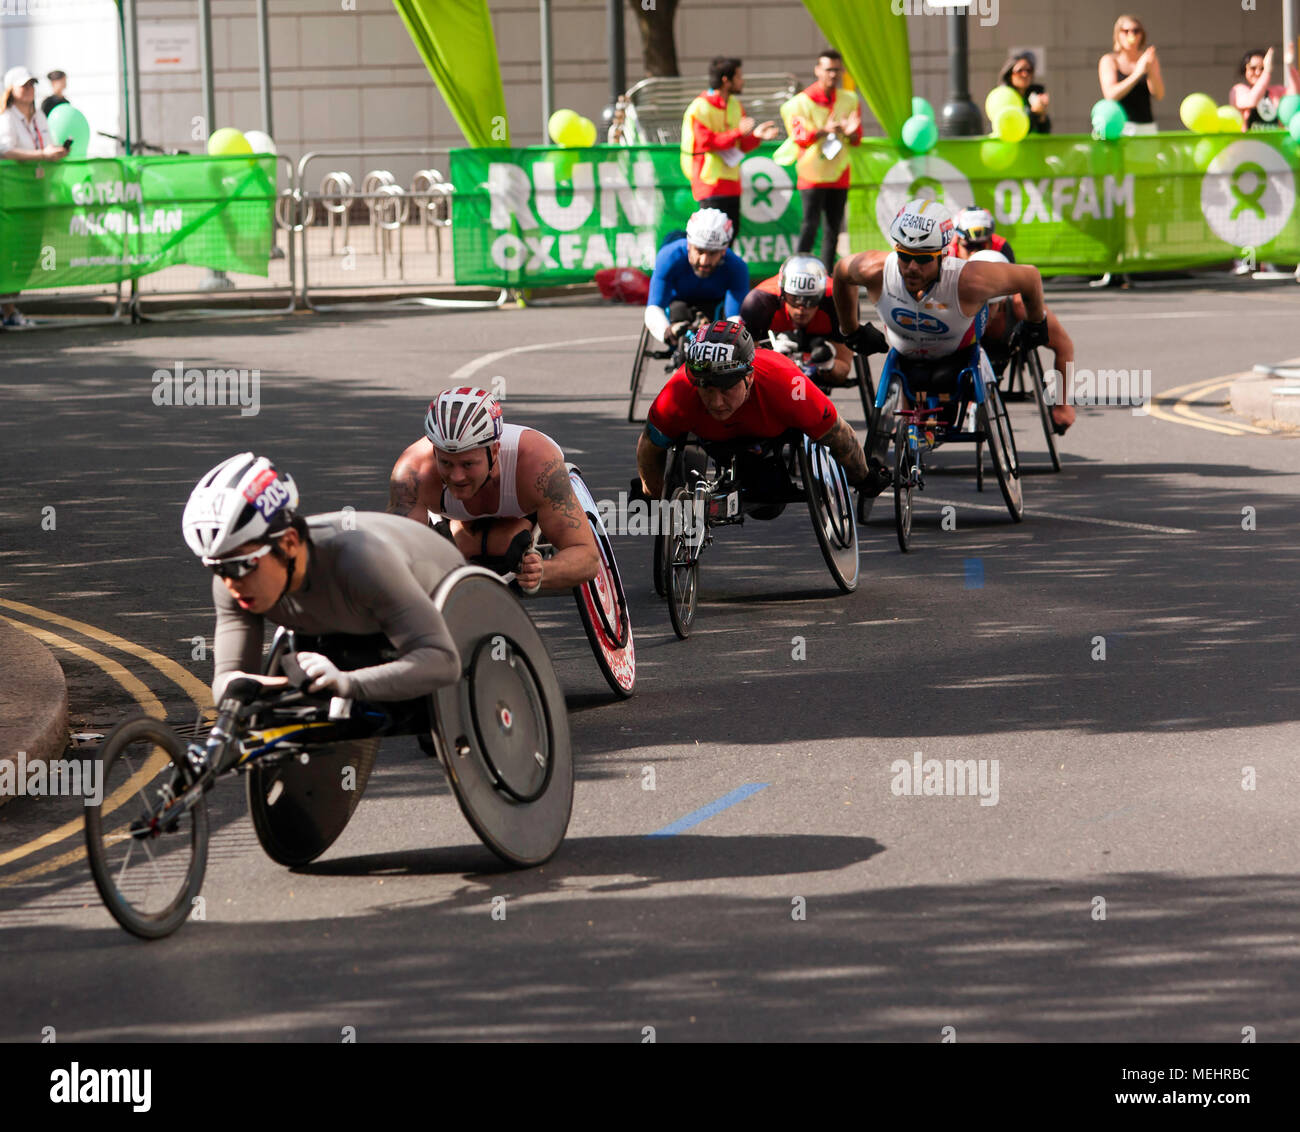 The Elite Mens Wheelchair Athletes pass through  Cabot Square, Canary Wharf, at 18 miles during the 2018 London marathon. David  Wier (Black helmet) went on to  win the men's wheelchair race in a time of 01.31.15. - Stock Image